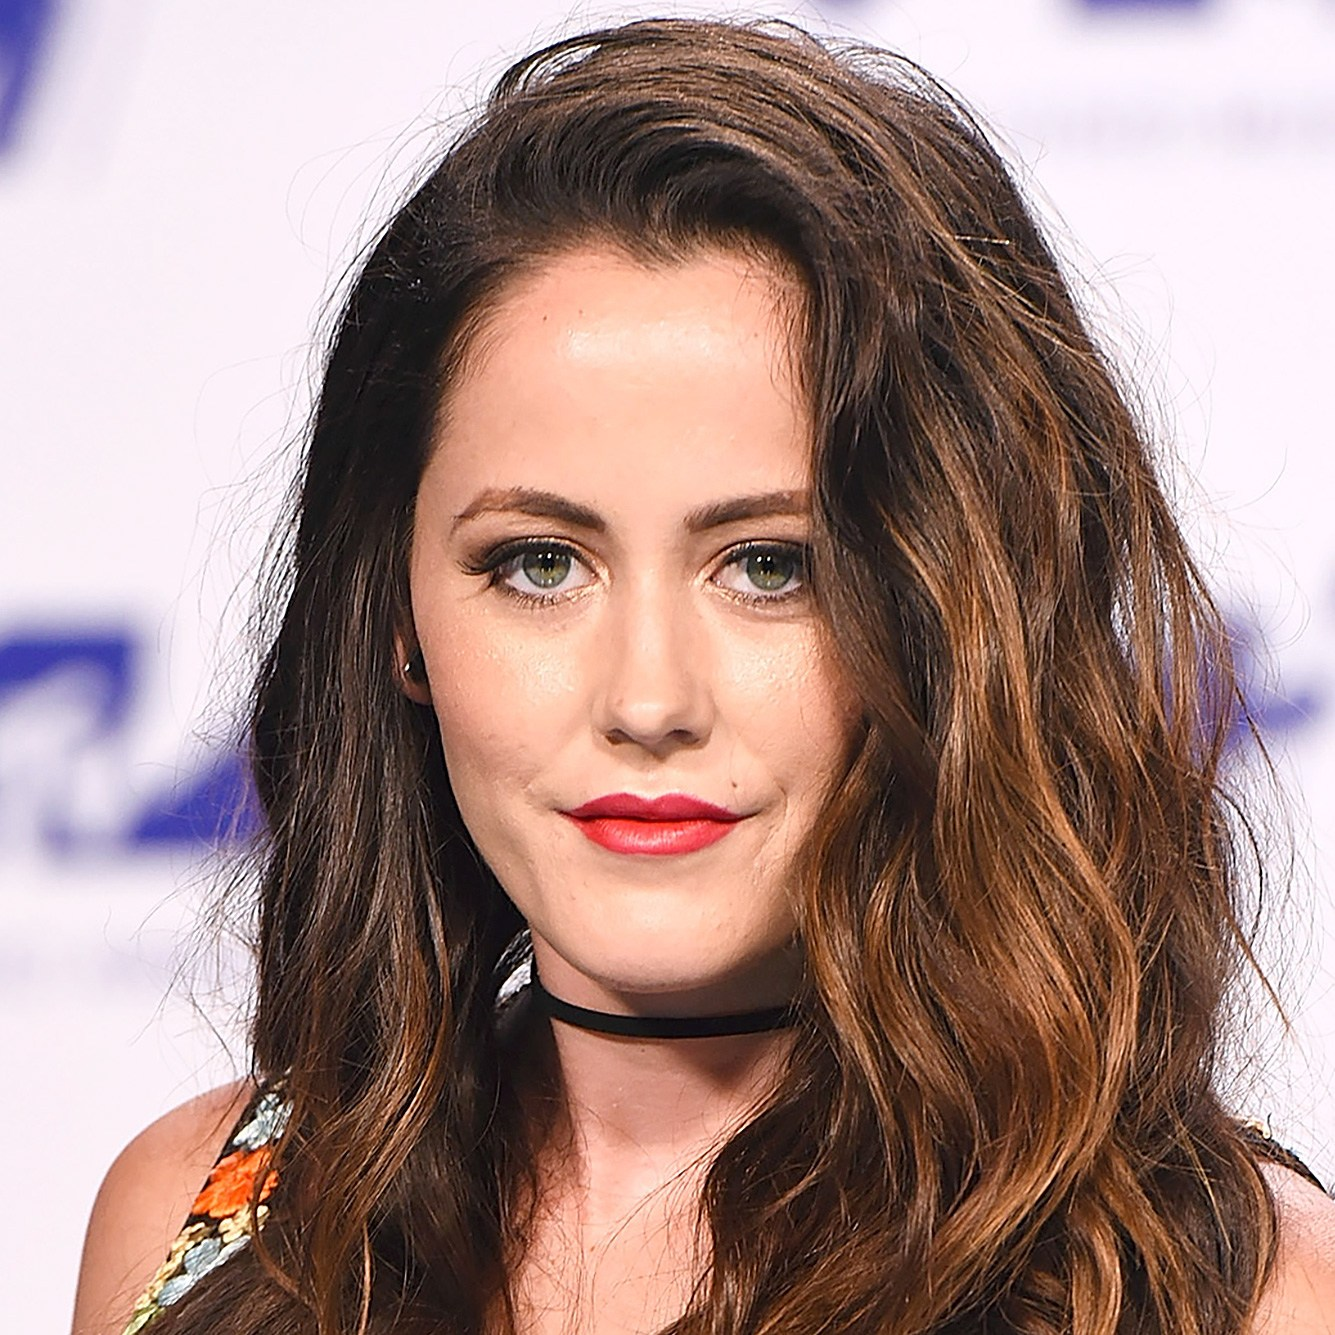 Jenelle Evans, UsWeekly Celebrity Biography